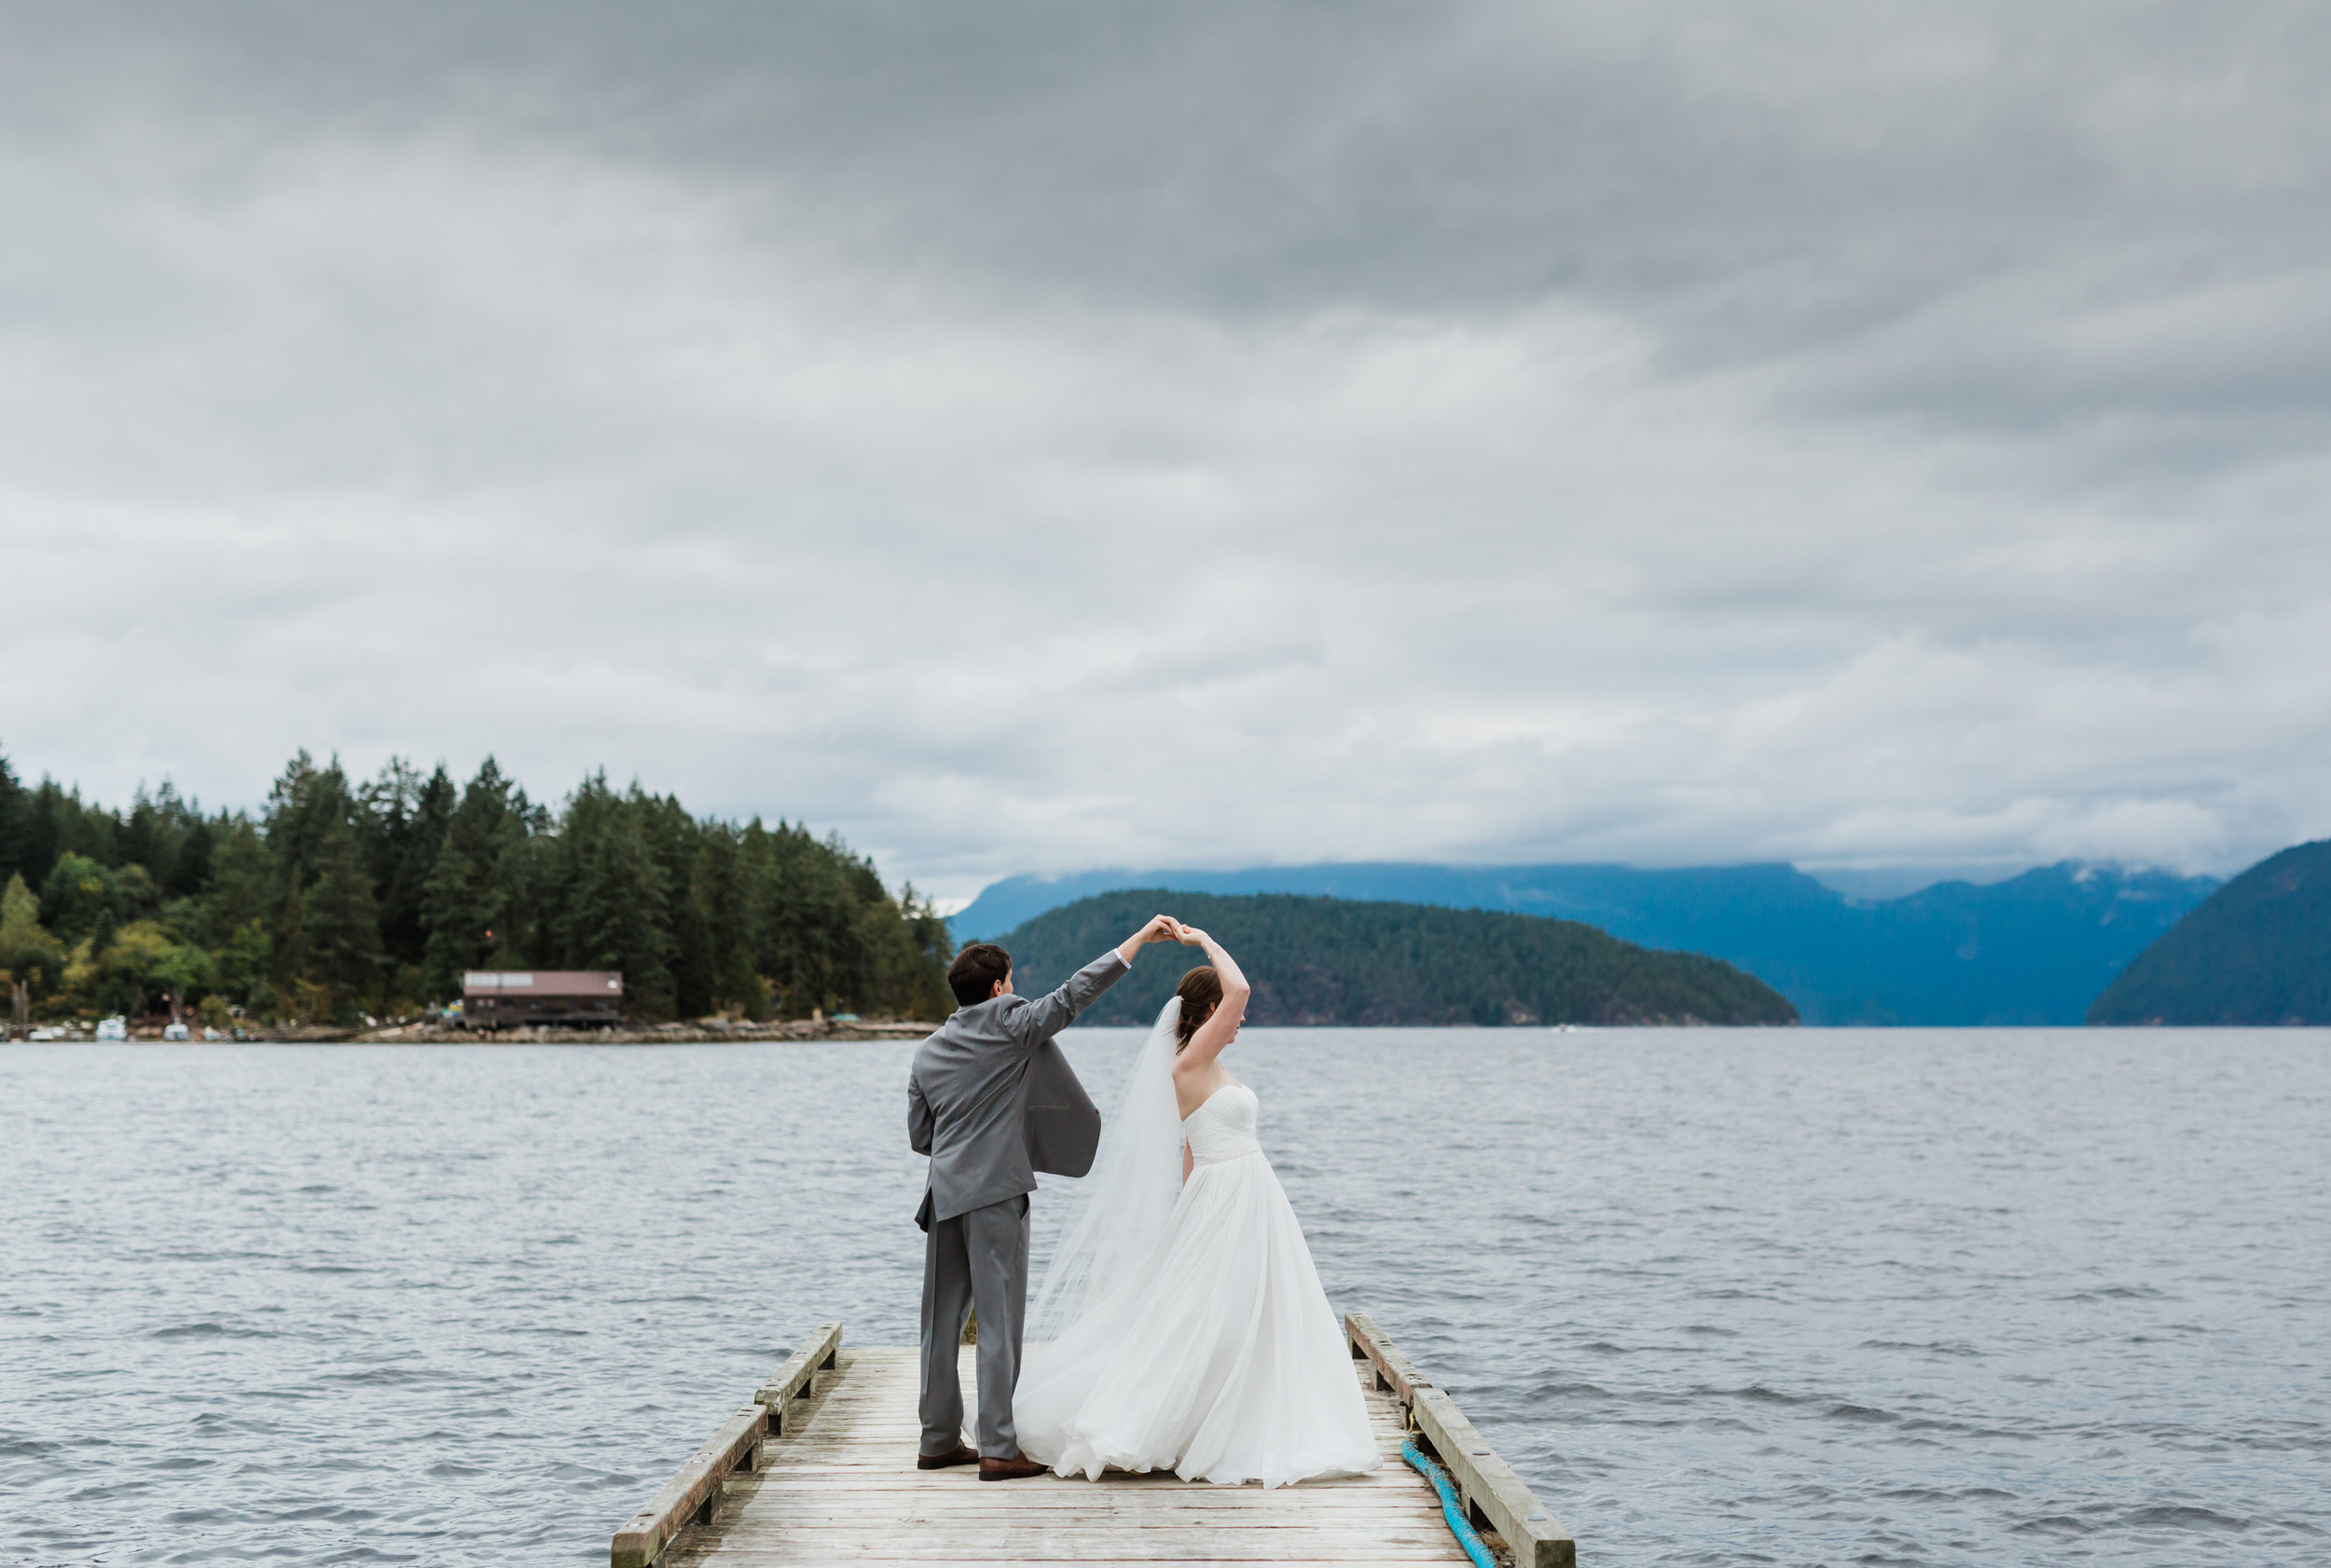 West Coast Wilderness Lodge Wedding Photos - Vancouver Wedding Photographer & Videographer - Sunshine Coast Wedding Photos - Sunshine Coast Wedding Photographer - Jennifer Picard Photography - IMG_6355.jpg